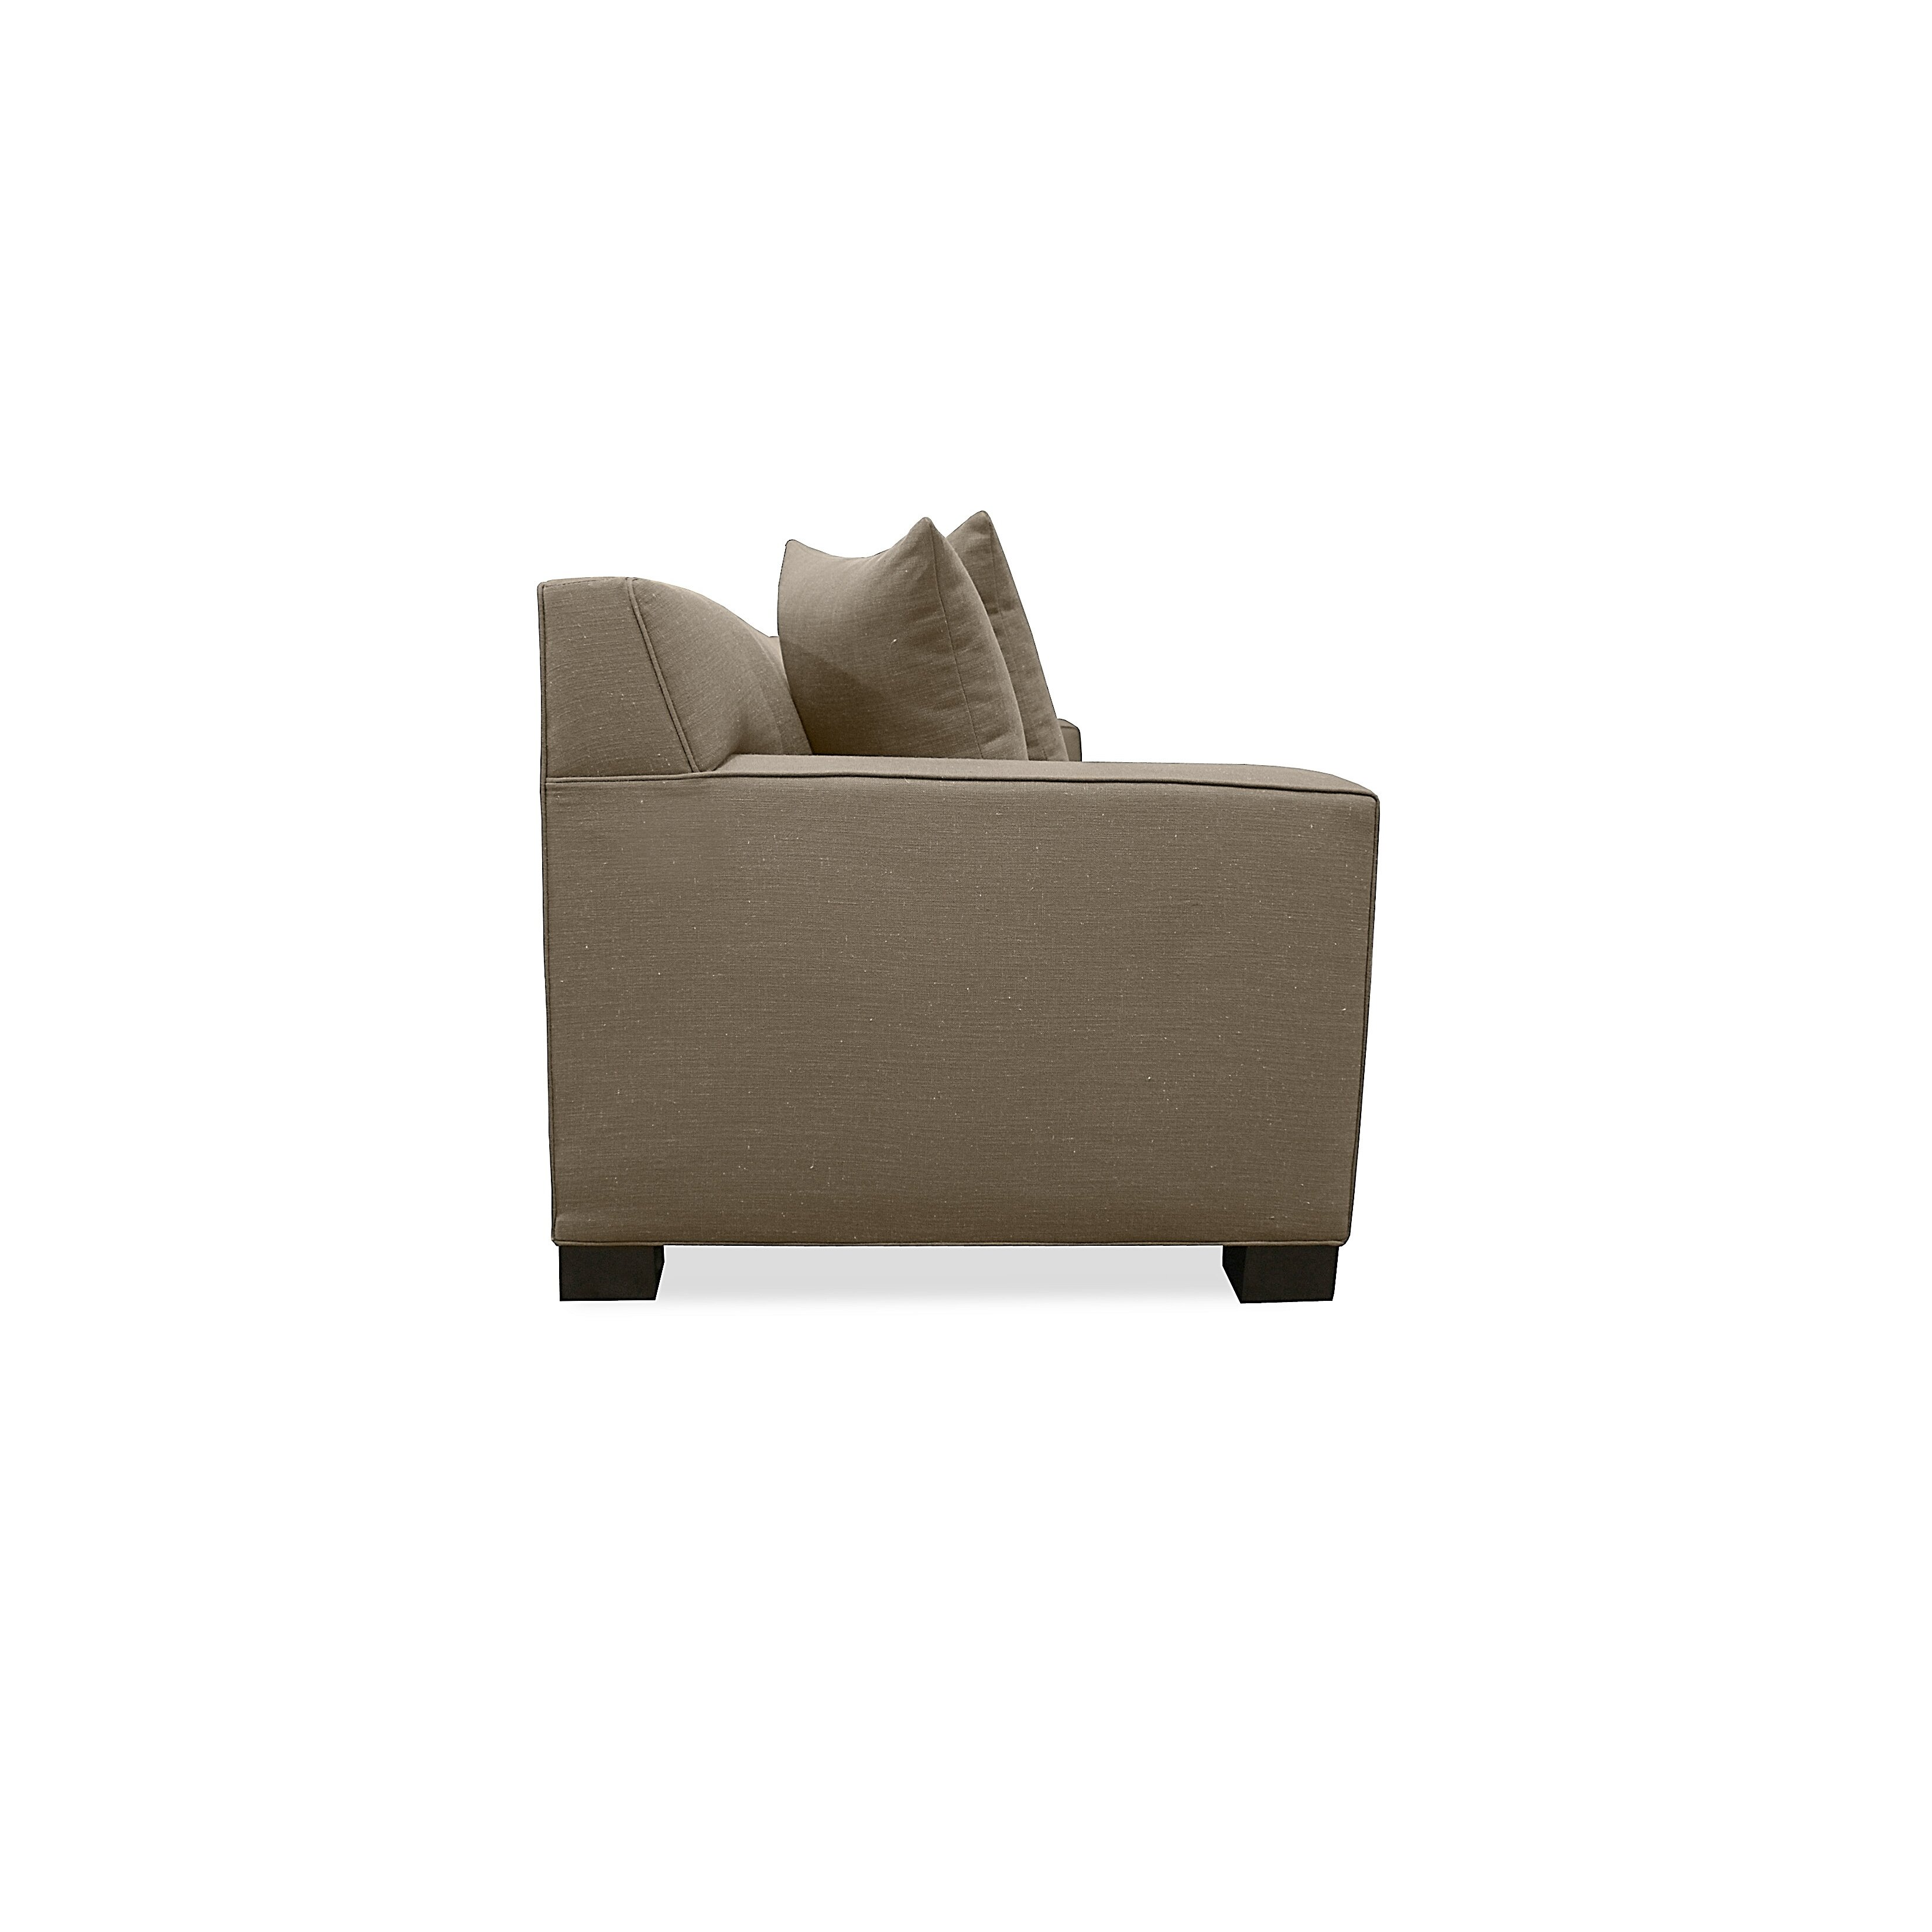 South Cone Home Ferrara Sofa 60 Reviews Wayfair